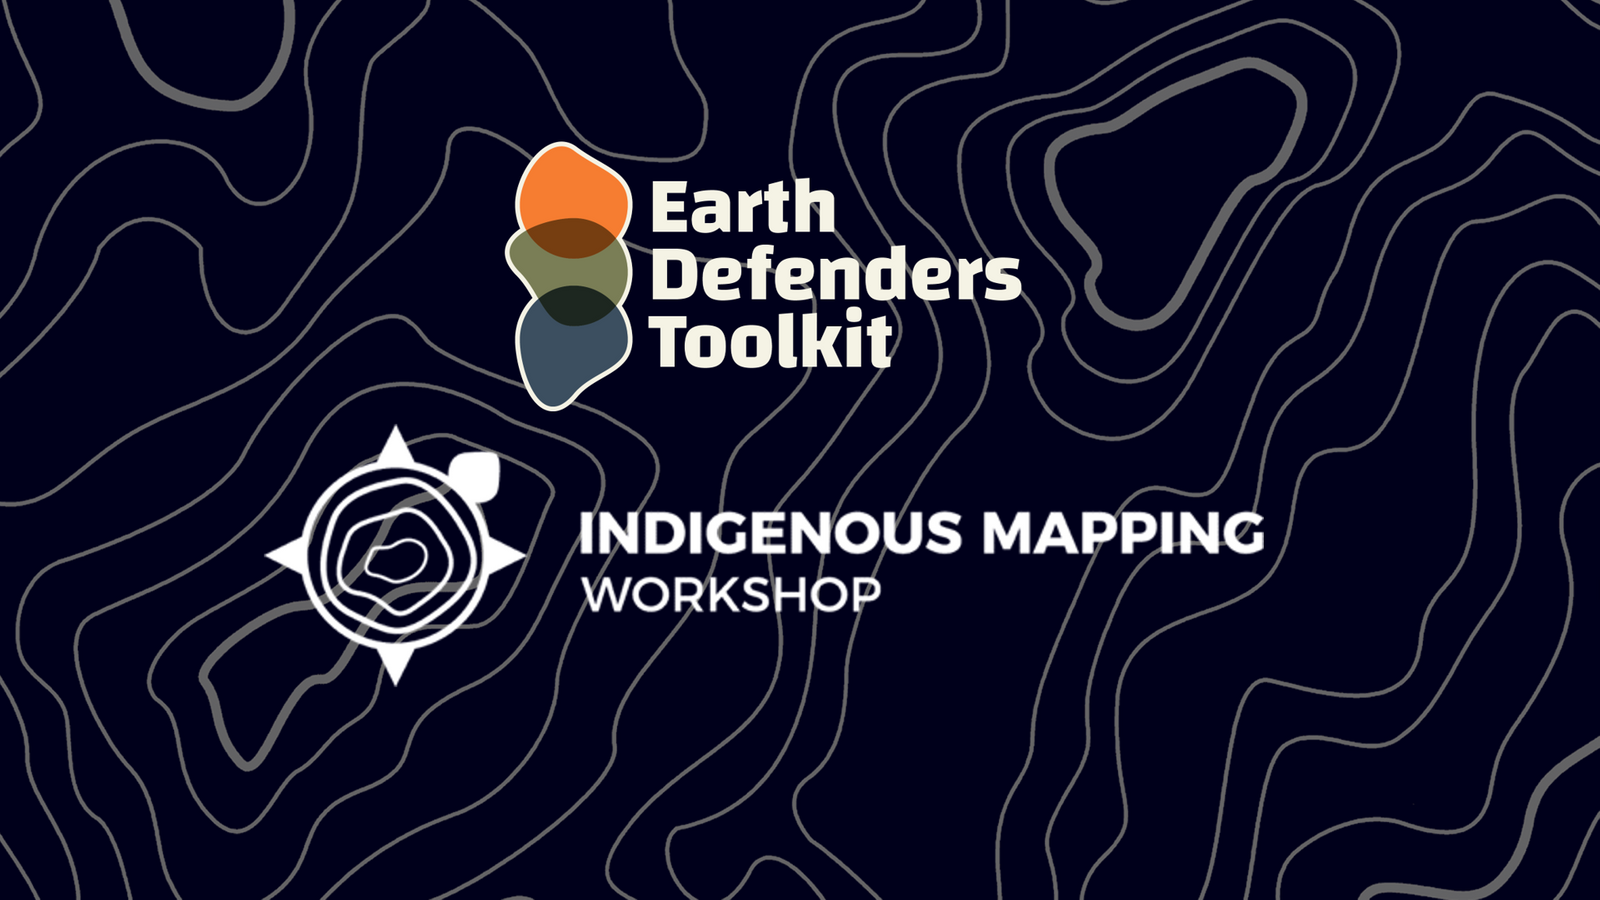 Co-creating an Earth Defenders Toolkit with the Indigenous Mapping Community at #2020IMW